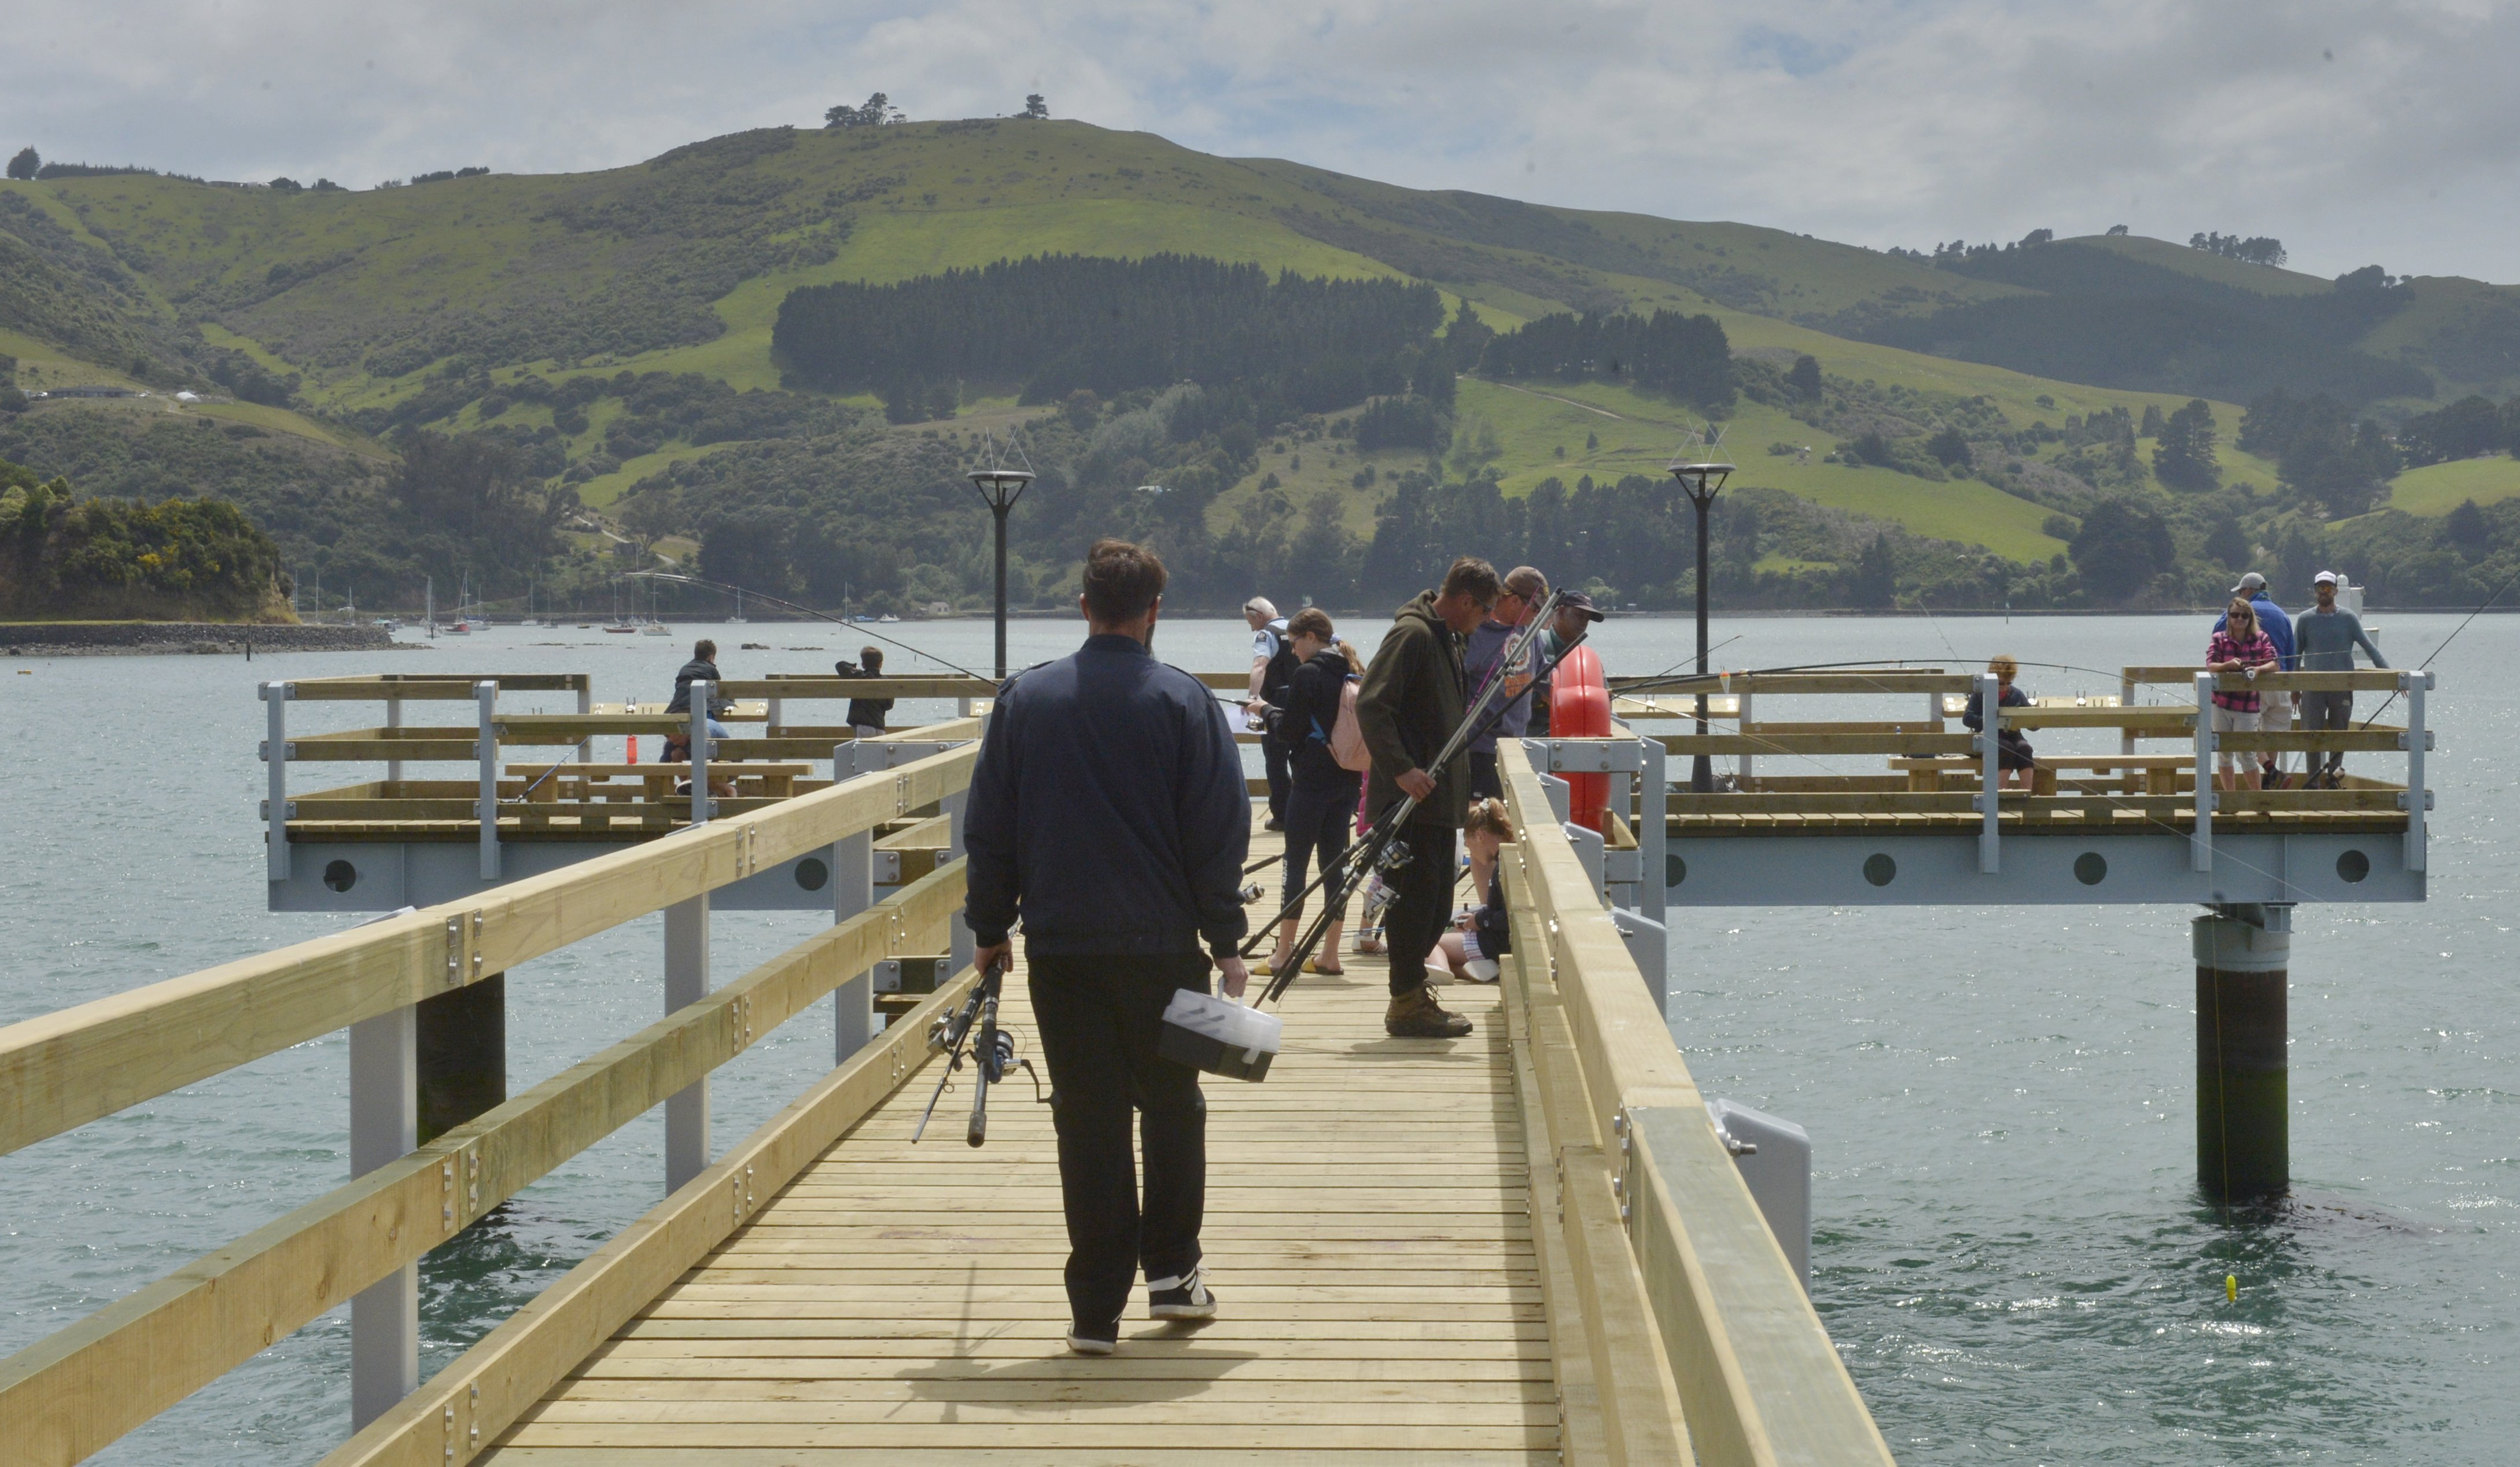 The new fishing wharf at Boiler Point has proved popular with local anglers. PHOTOS: GERARD O...